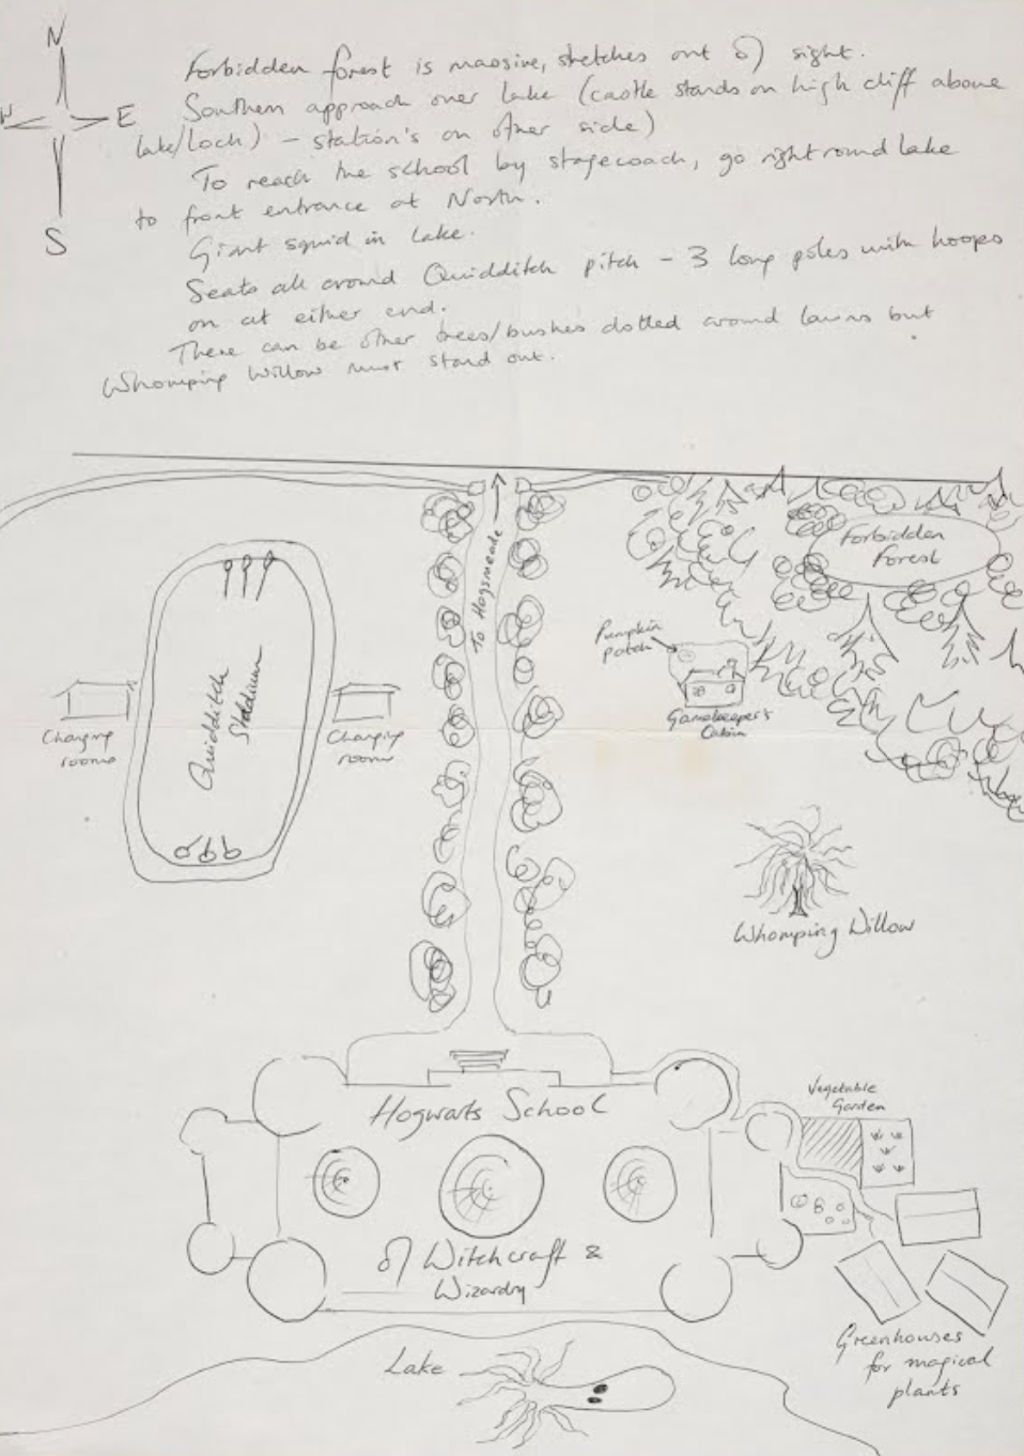 Sketched map of Hogwarts School of Witchcraft and Wizardry